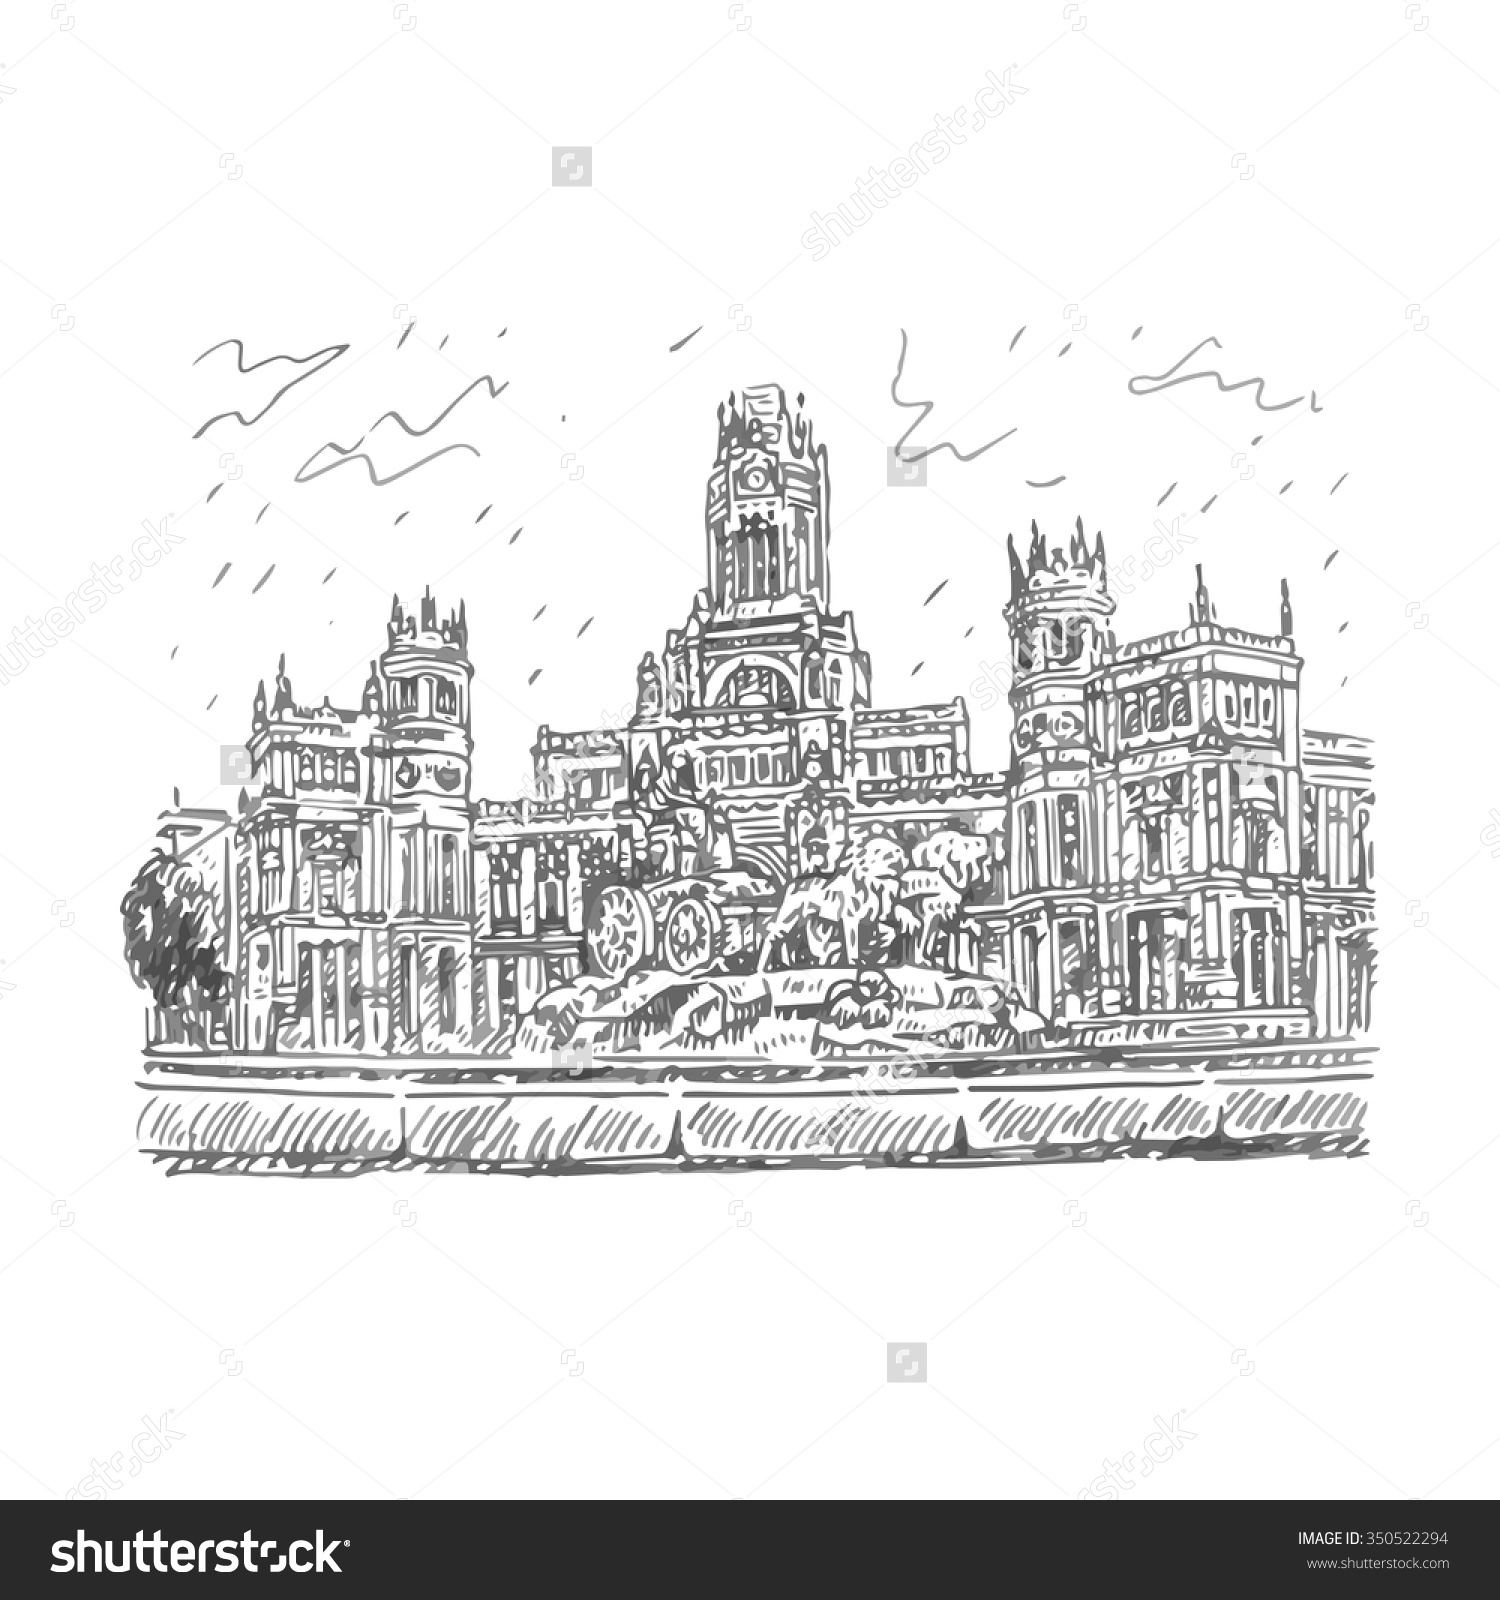 Cybele Palace Fountain Plaza Cibeles Madrid Stock Vector 350522294.